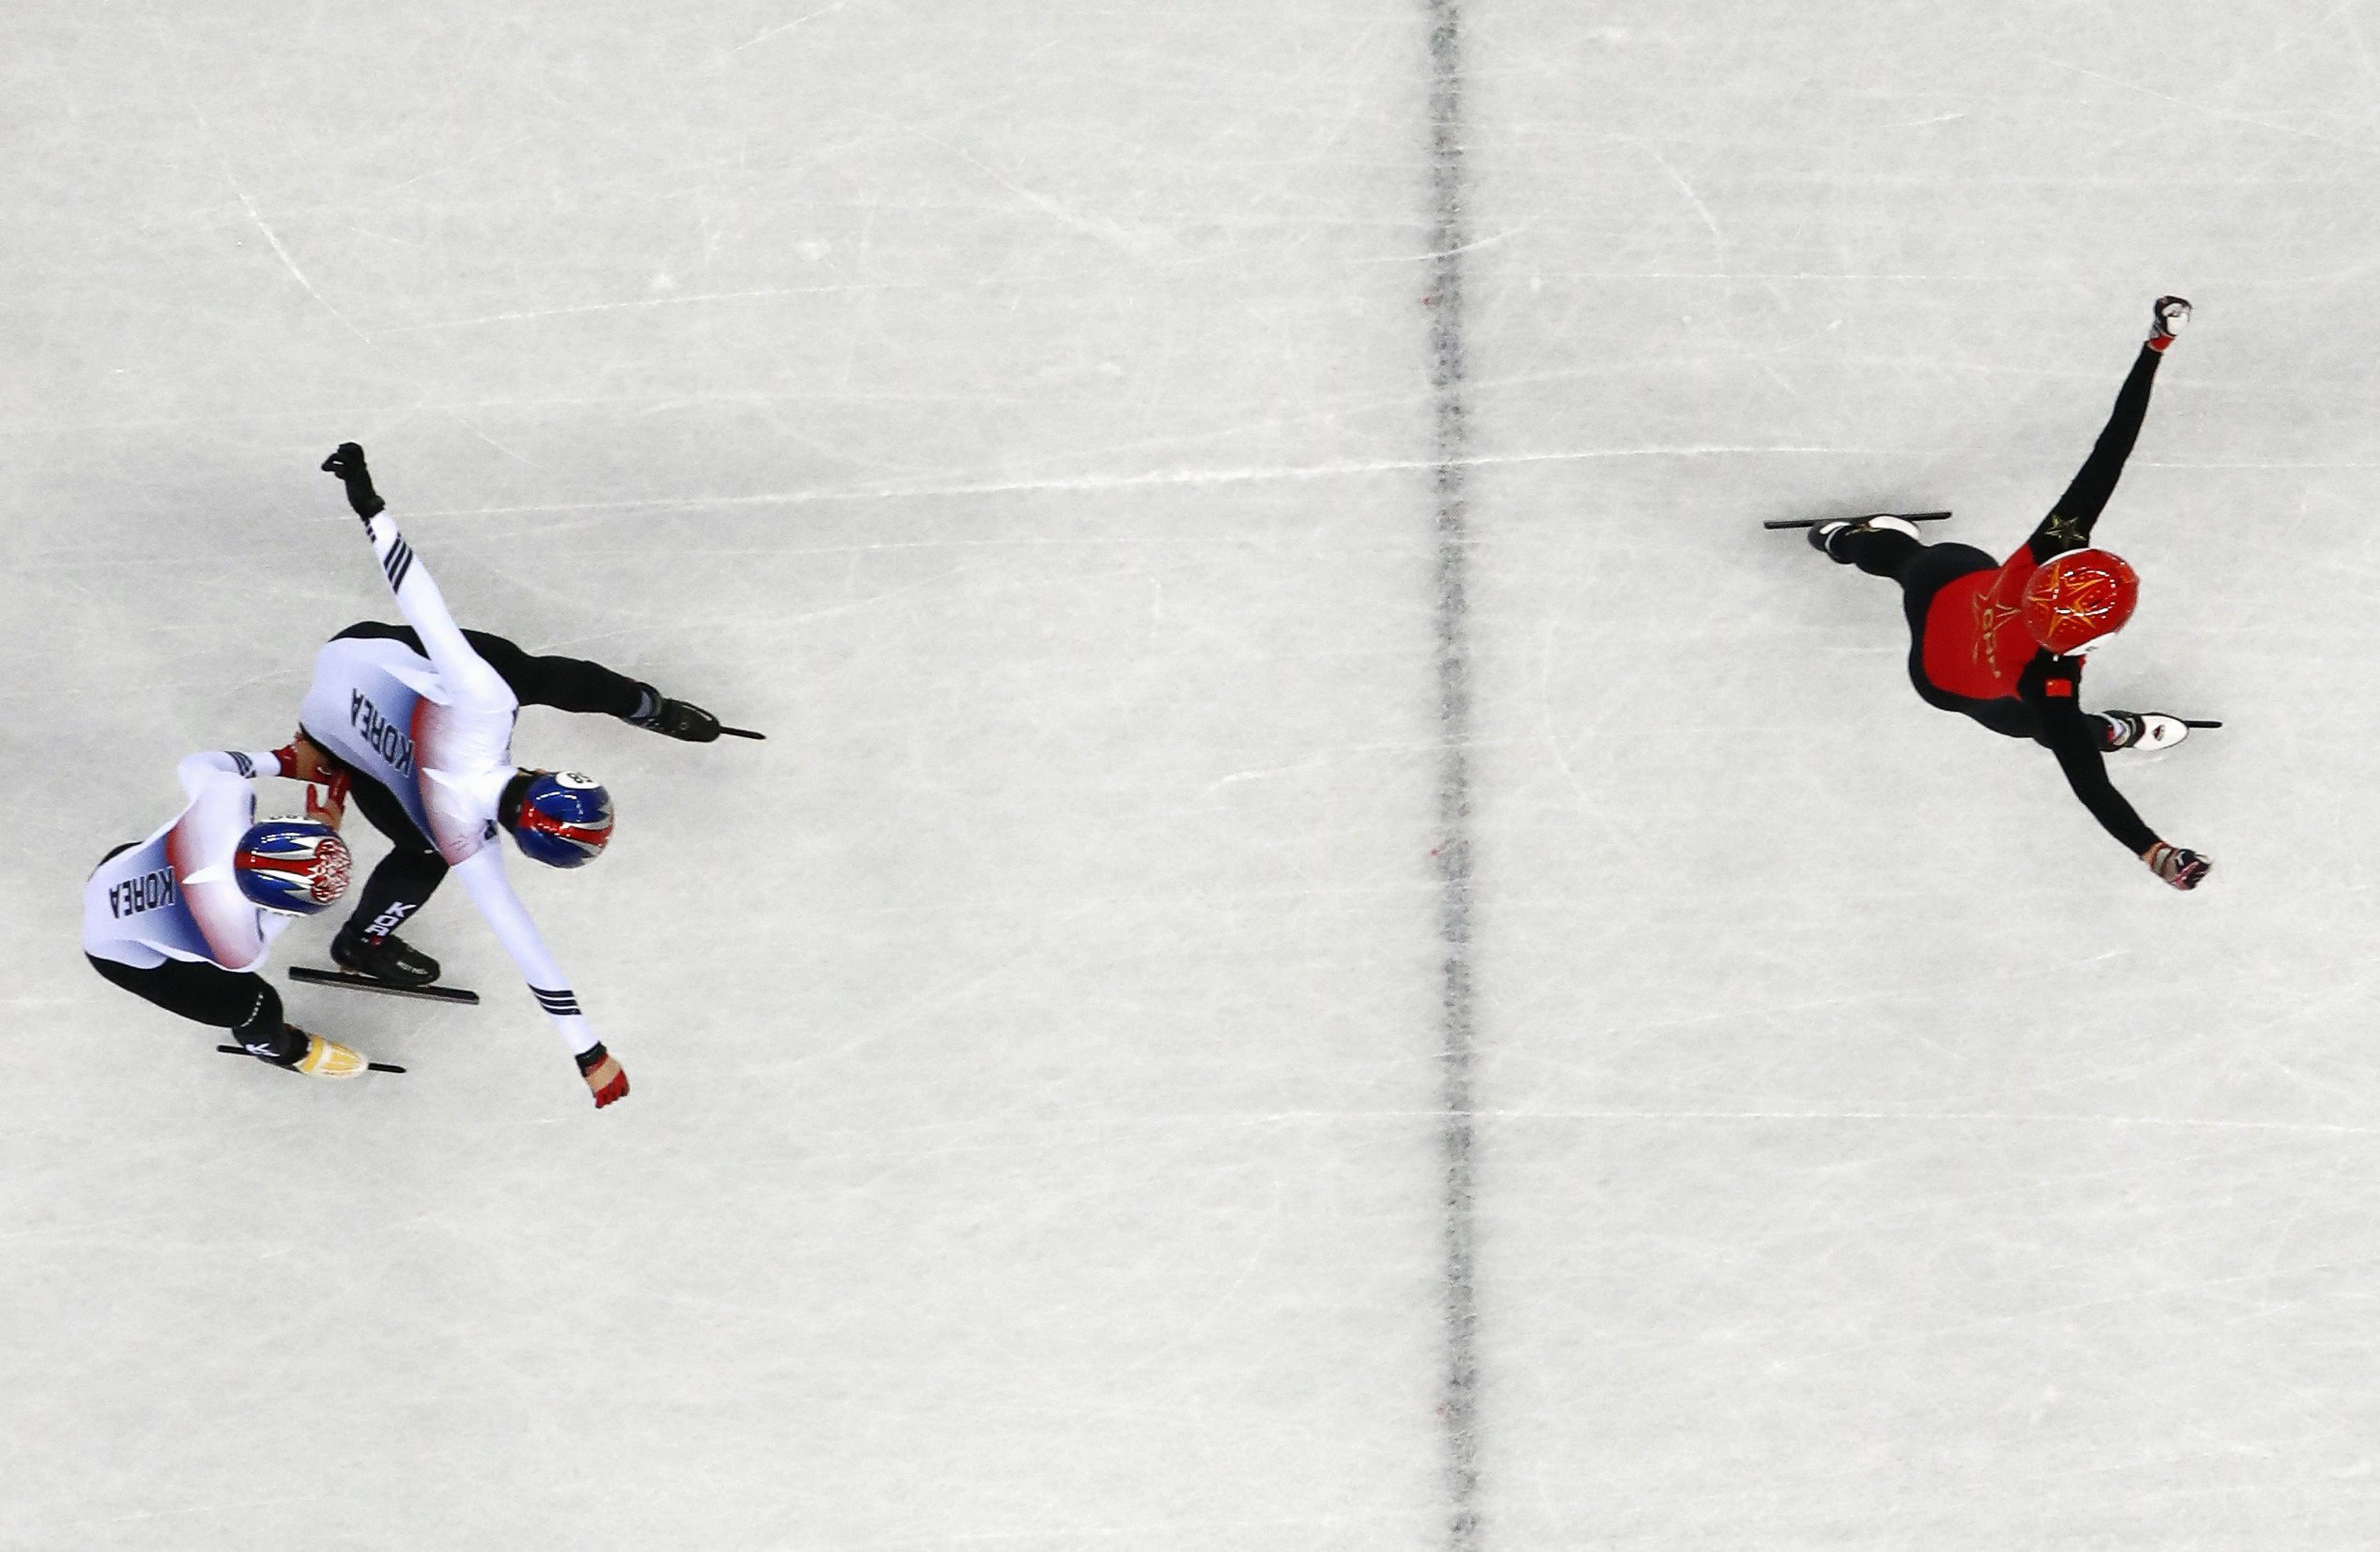 Short Track Speed Skating Events - Pyeongchang 2018 Winter Olympics - Men's 500m Finals - Gangneung Ice Arena - Gangneung, South Korea - February 22, 2018 - Gold medallist Wu Dajing of China skates to victory ahead of silver medallist Hwang Dae-heon of South Korea and bronze medallist Lim Hyo-jun of South Korea. REUTERS/Lucy Nicholson